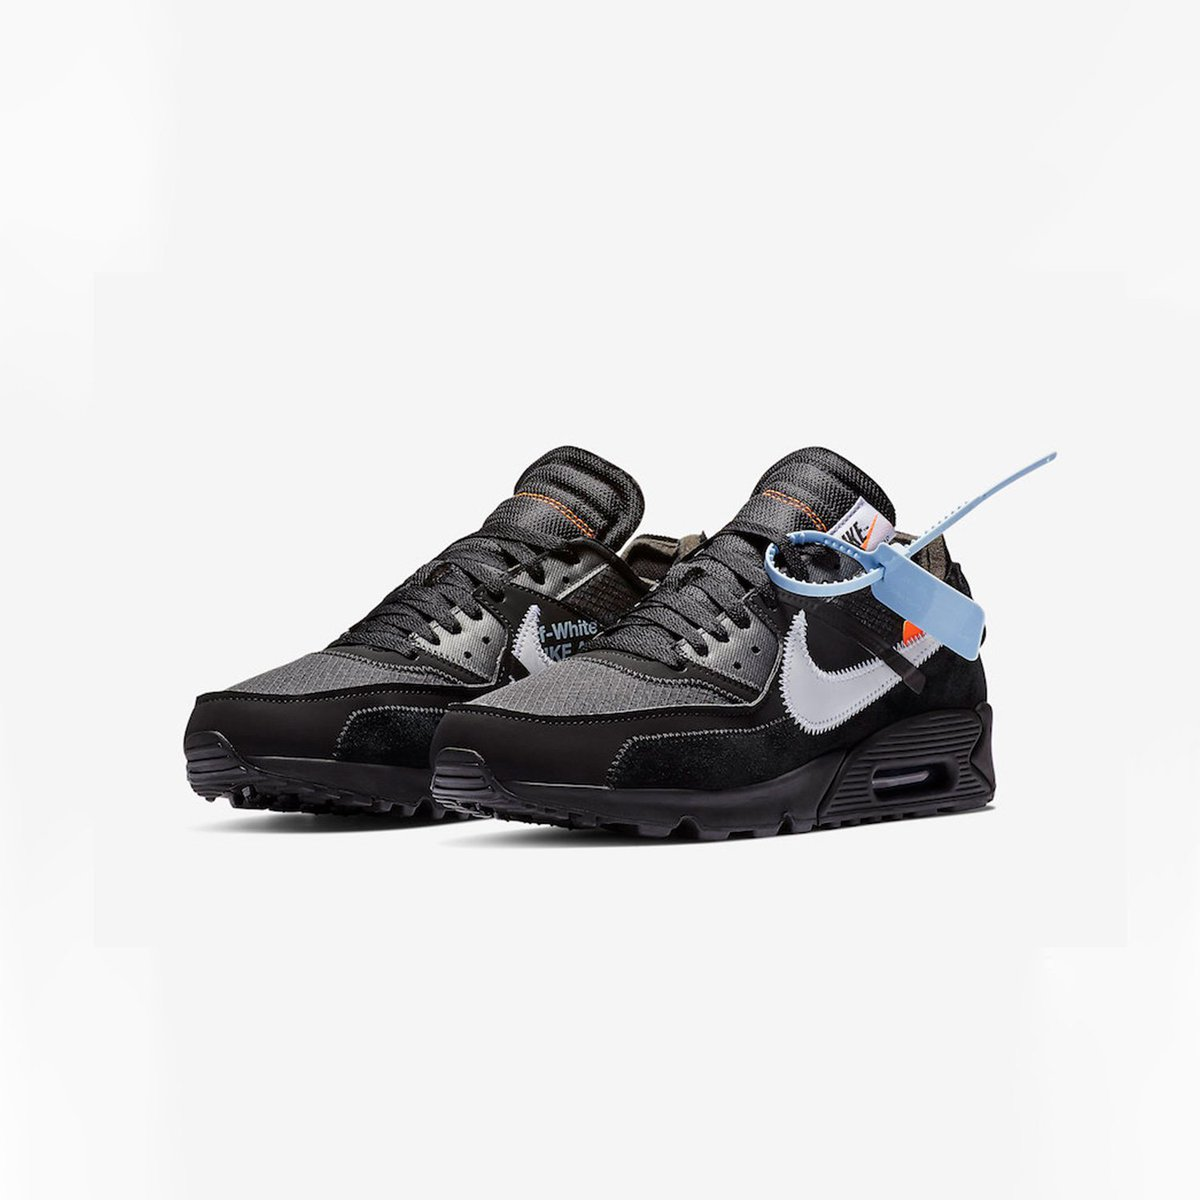 0b2ada36668 You must enter now to participate: http://ow.ly/3rbf30nwPyK #nike #offwhite  #airmax90 #footdistrictpic.twitter.com/tP94UbeA1X